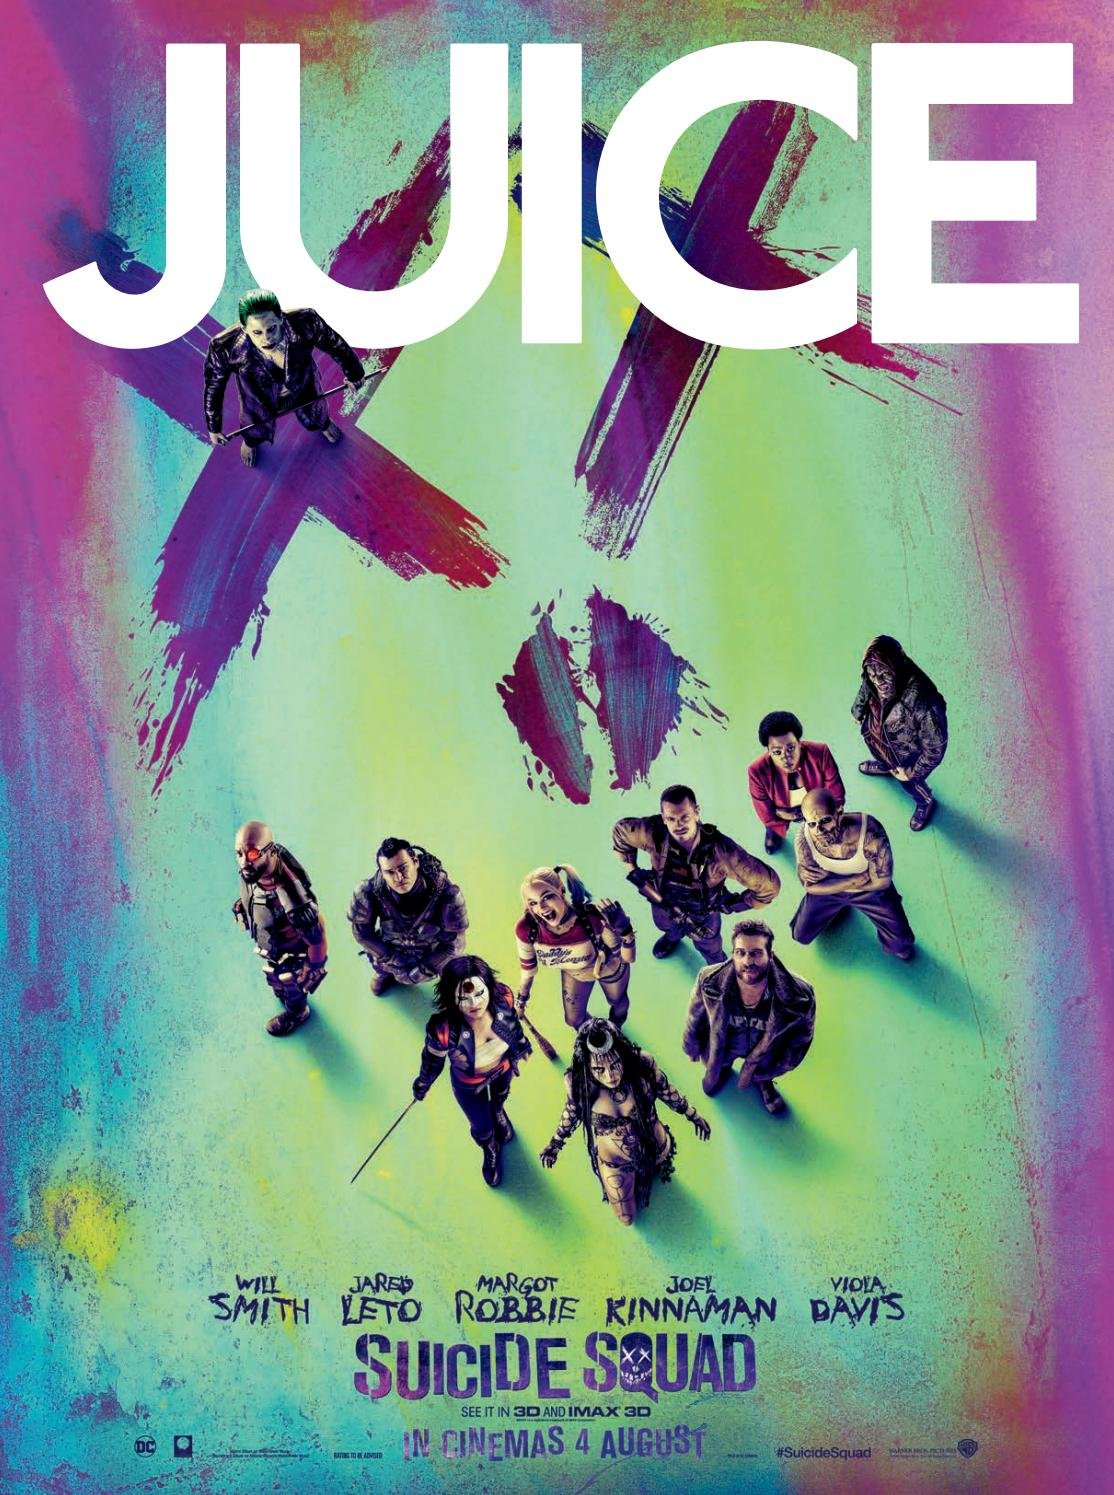 JUICE July 2016 - Tegan and Sara  b8e530f641